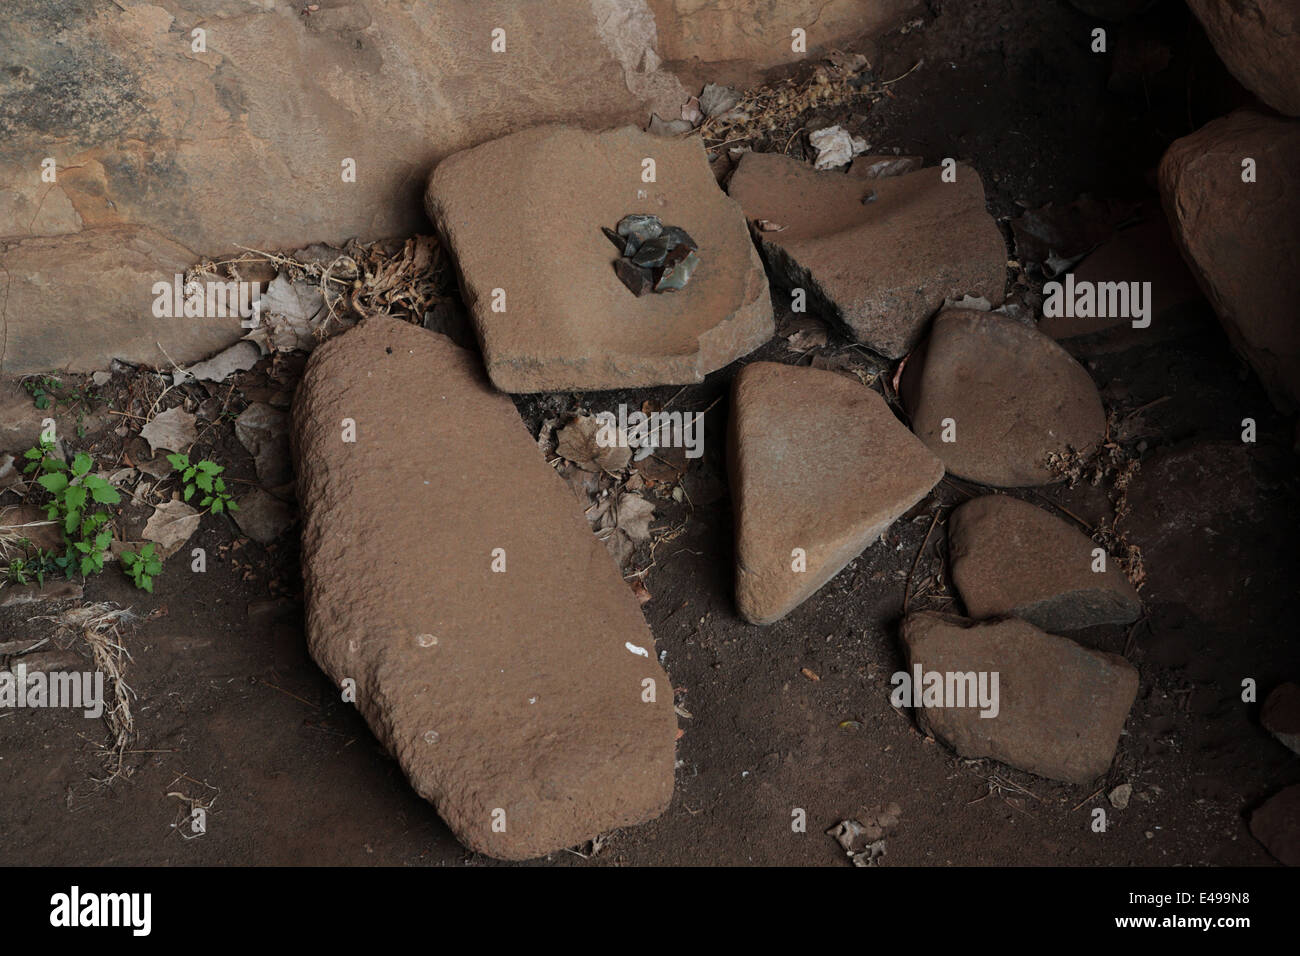 Stone age implements in Liphofung Cave, Lesotho - Stock Image